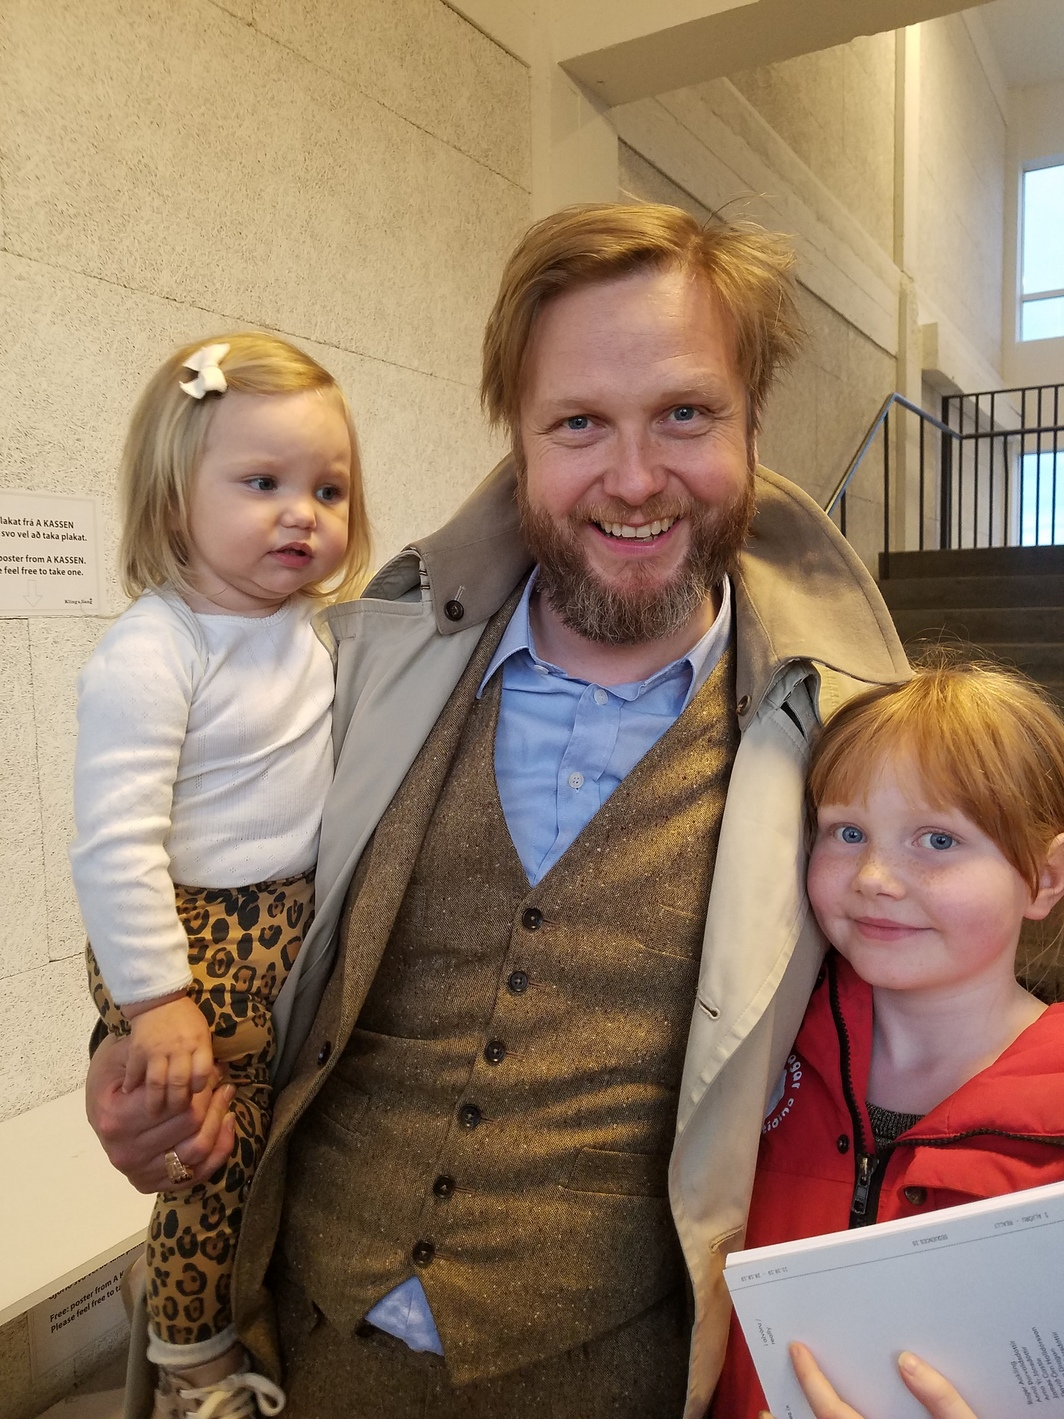 Artist Ragnar Kjartansson and family. Photo: Scott Indrisek.